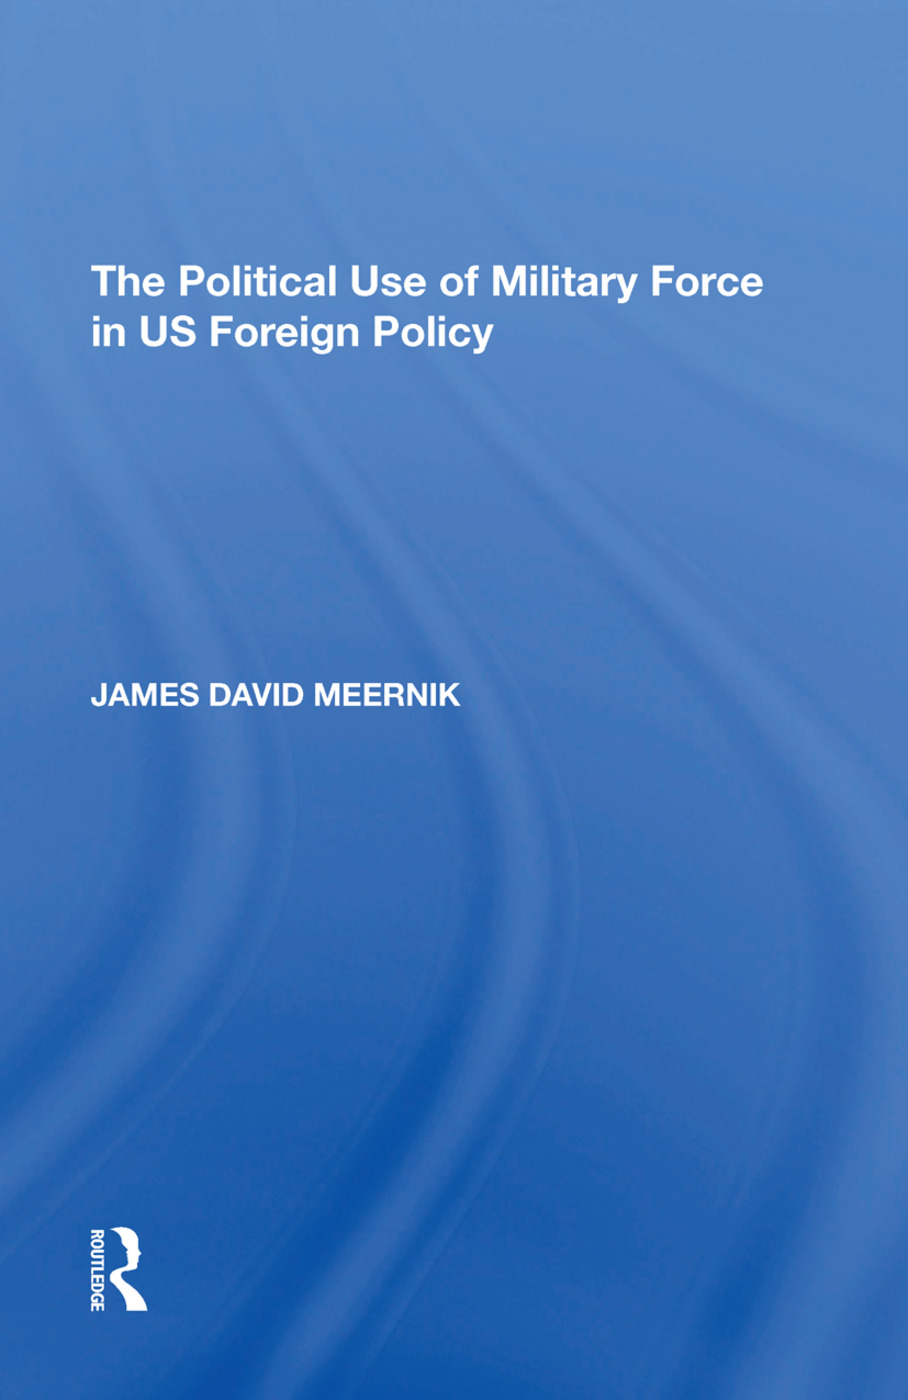 The Political Use of Military Force in US Foreign Policy